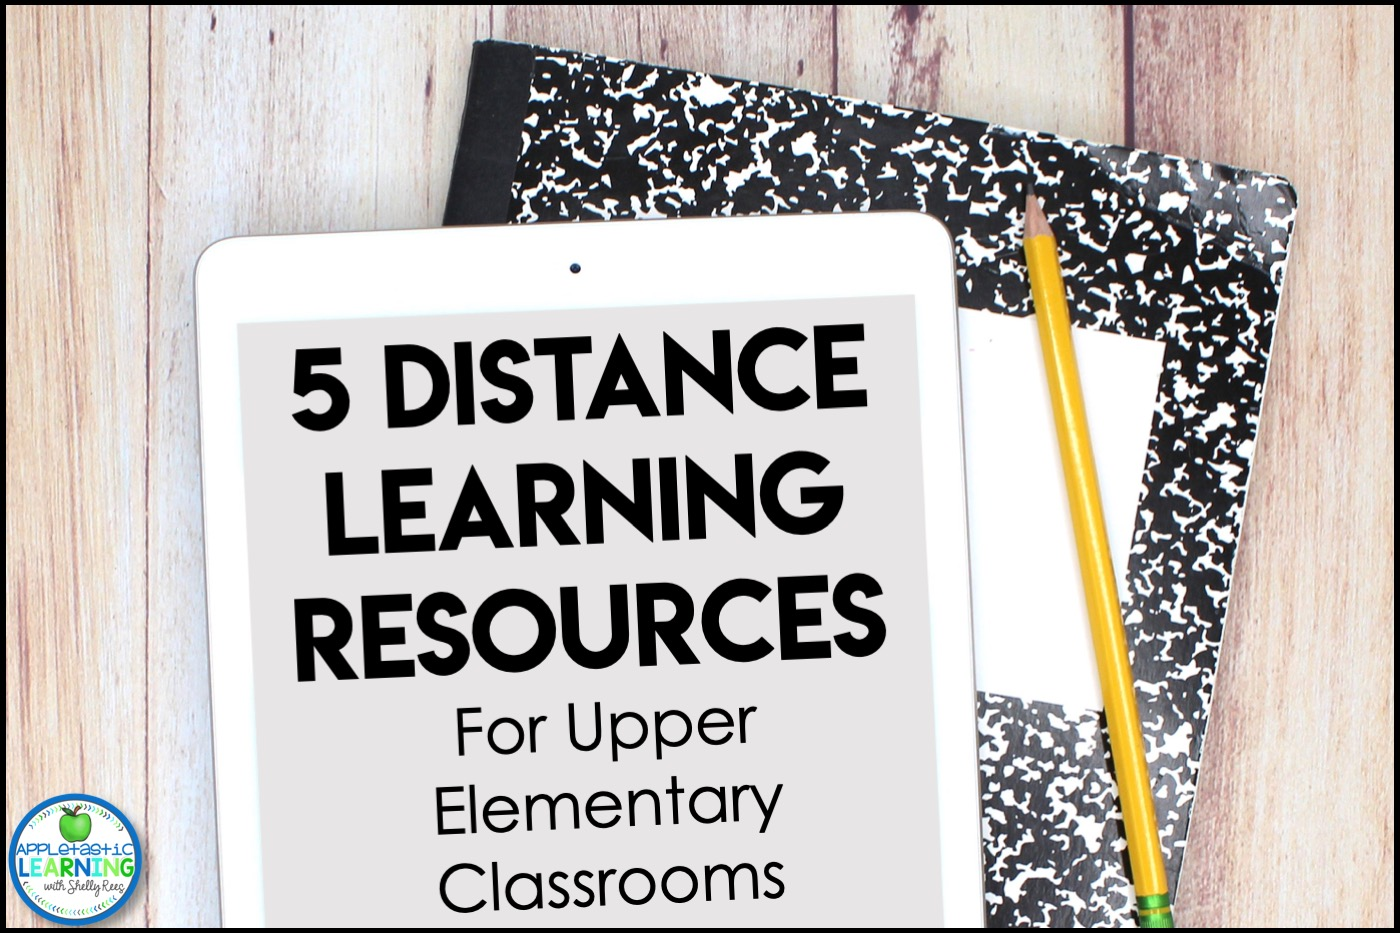 hight resolution of 5 Distance Learning Resources for Upper Elementary Classrooms - Appletastic  Learning